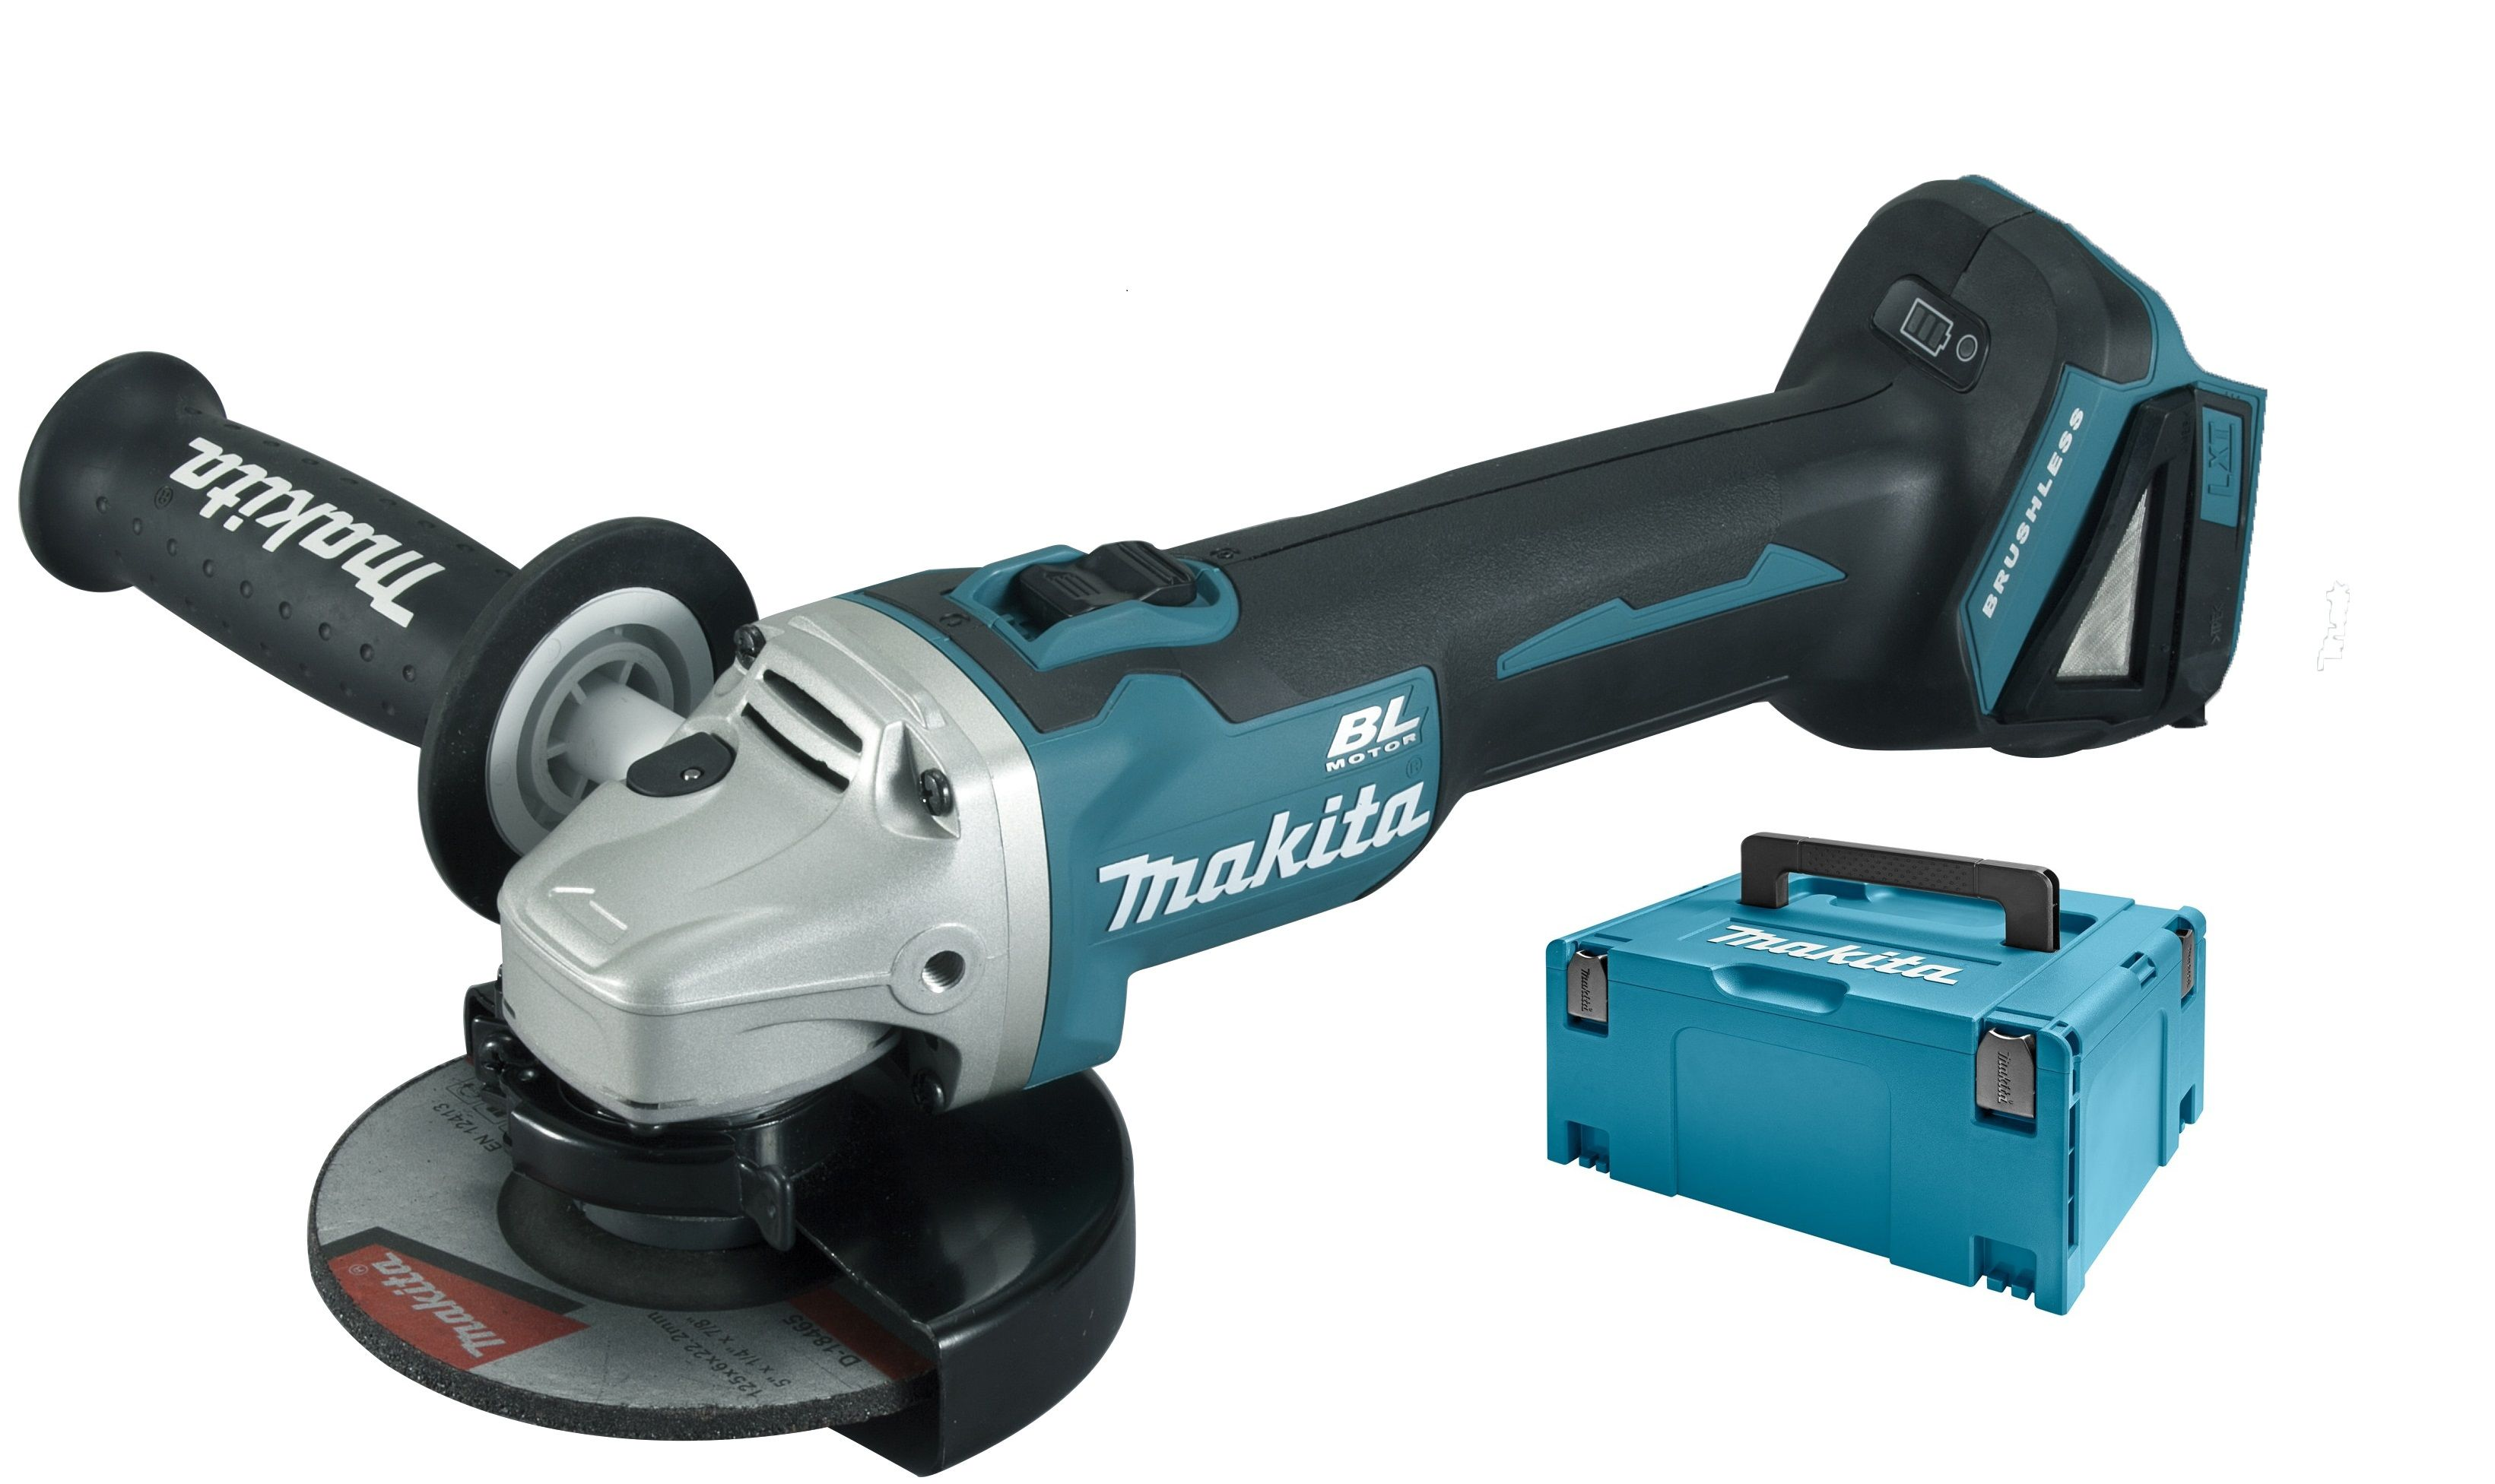 Hitachi Slijptol Accu Makita Dga504zj 18v Li Ion Accu Haakse Slijper Body In Mbox 125mm Koolborstelloos